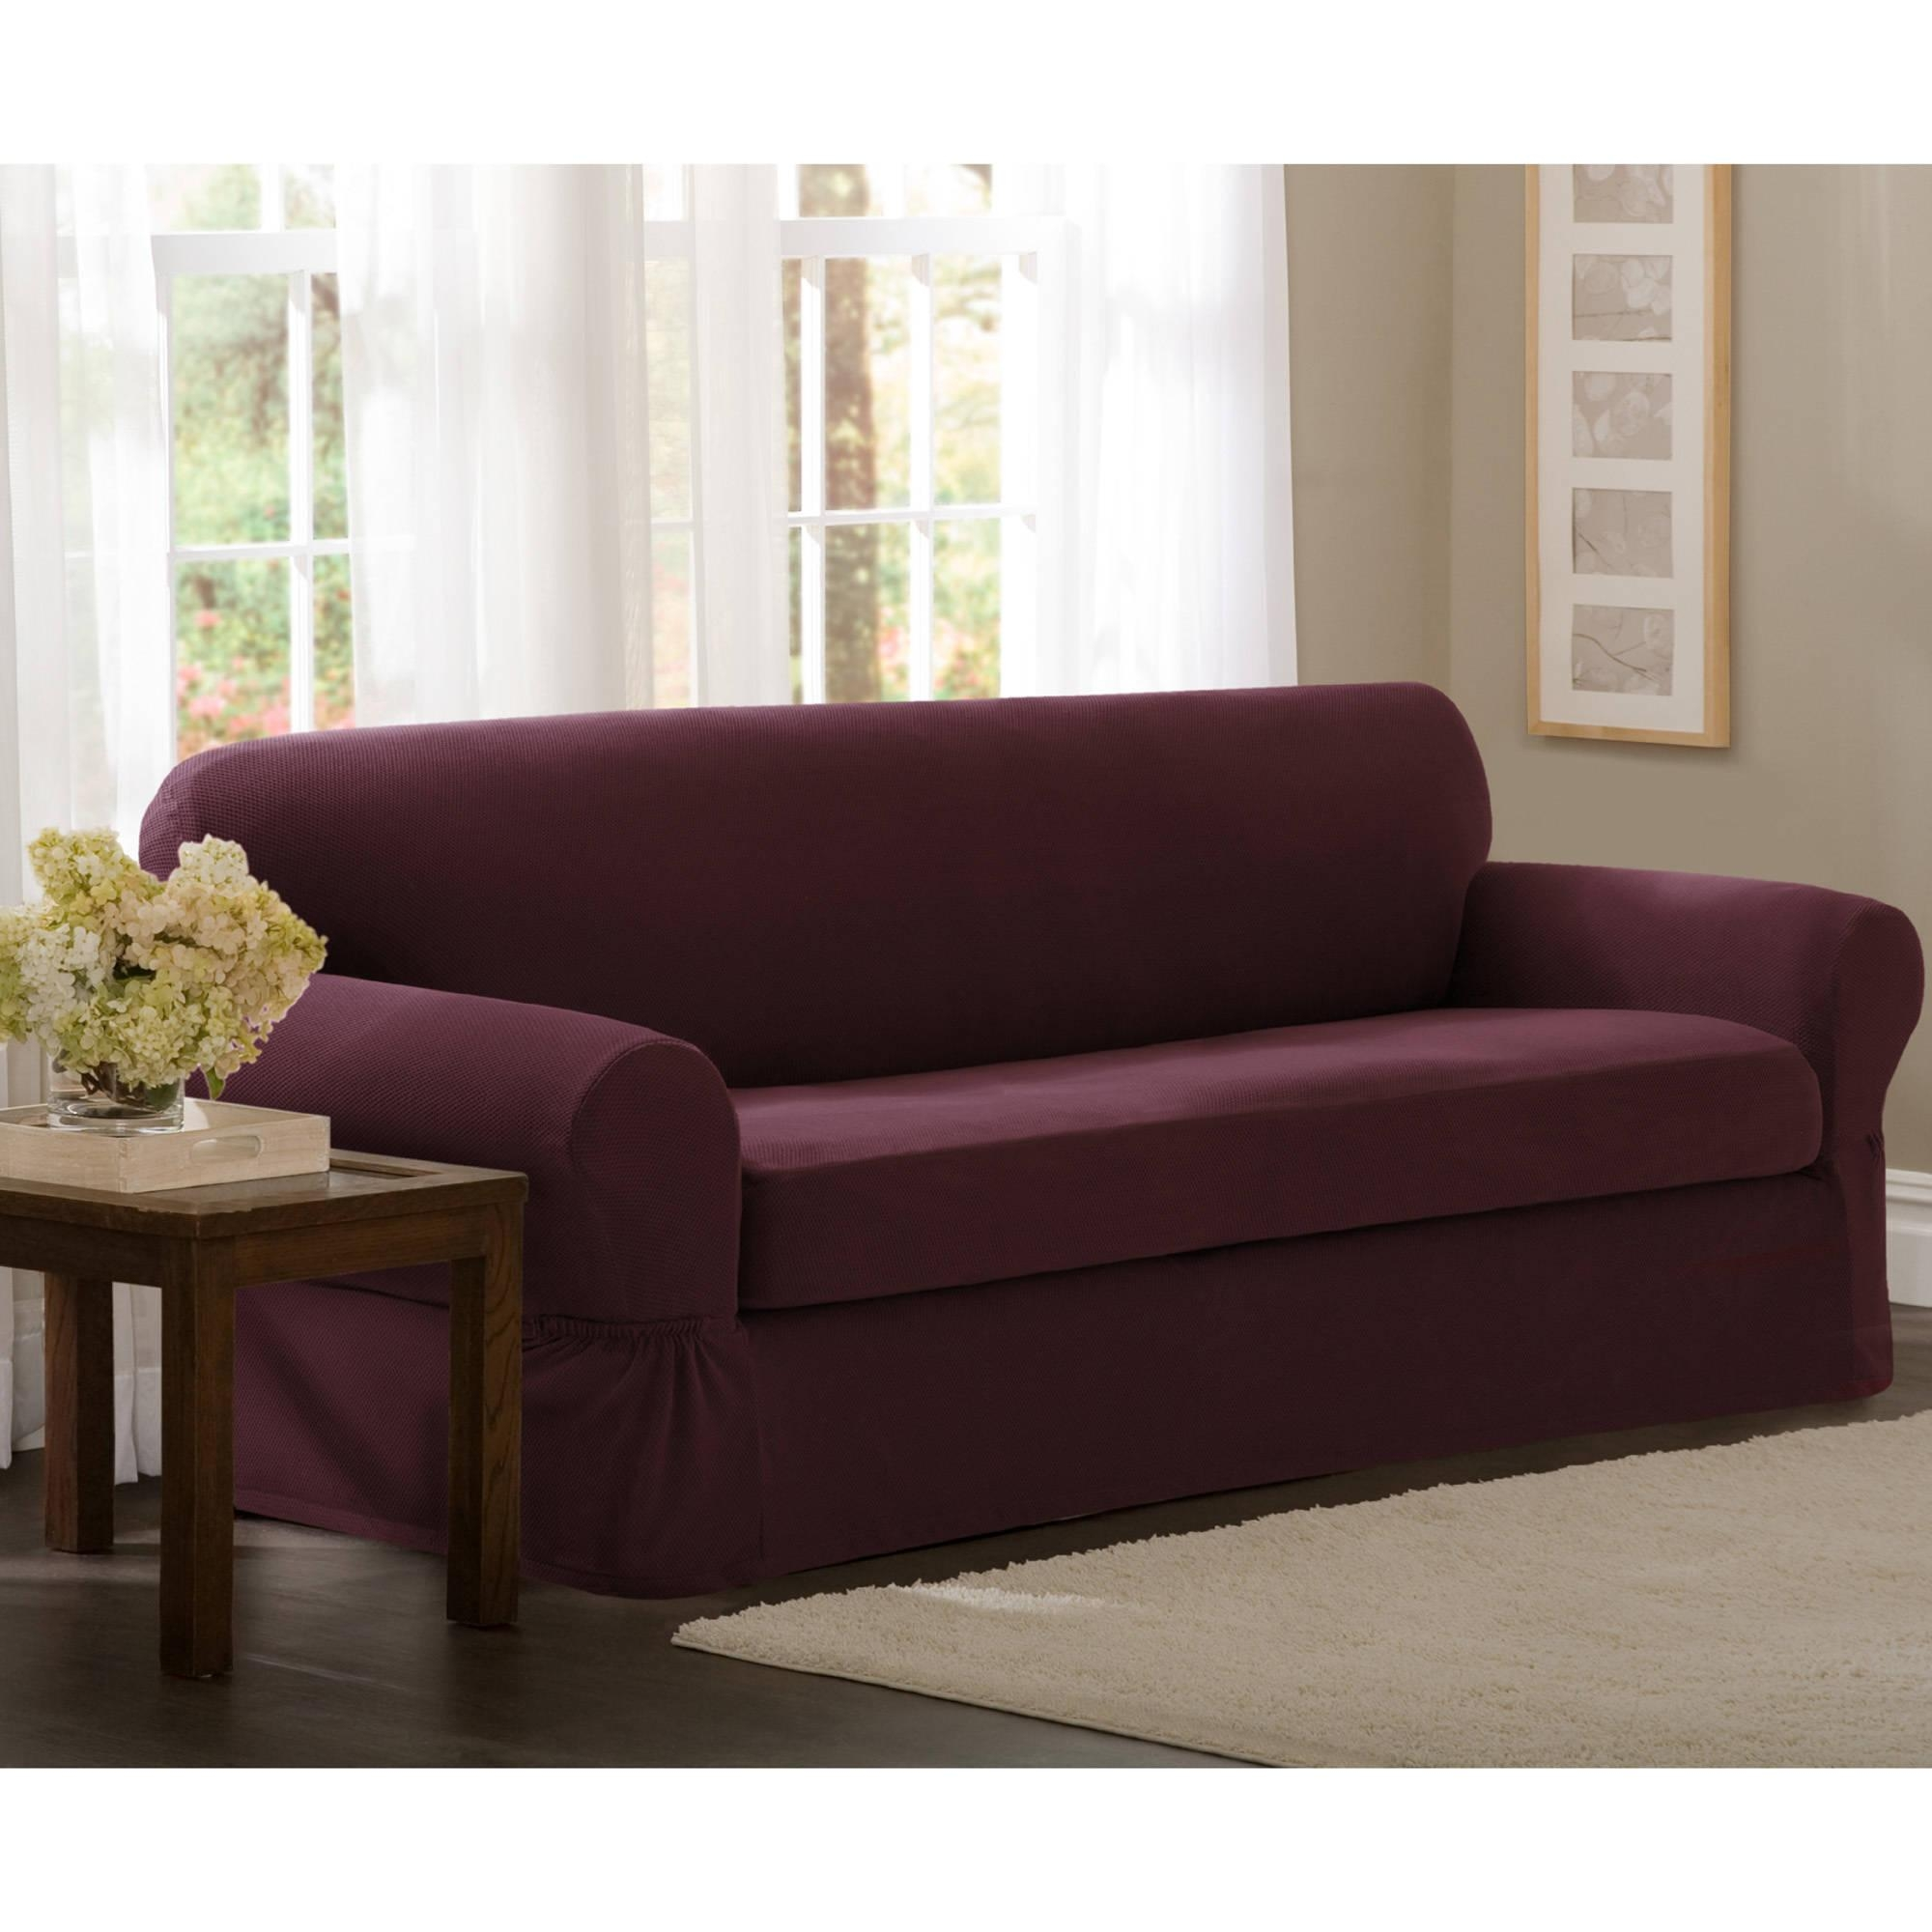 stretch slipcovers for sofas tokyo four seater sofa bed 20 best collection of slipcover ideas